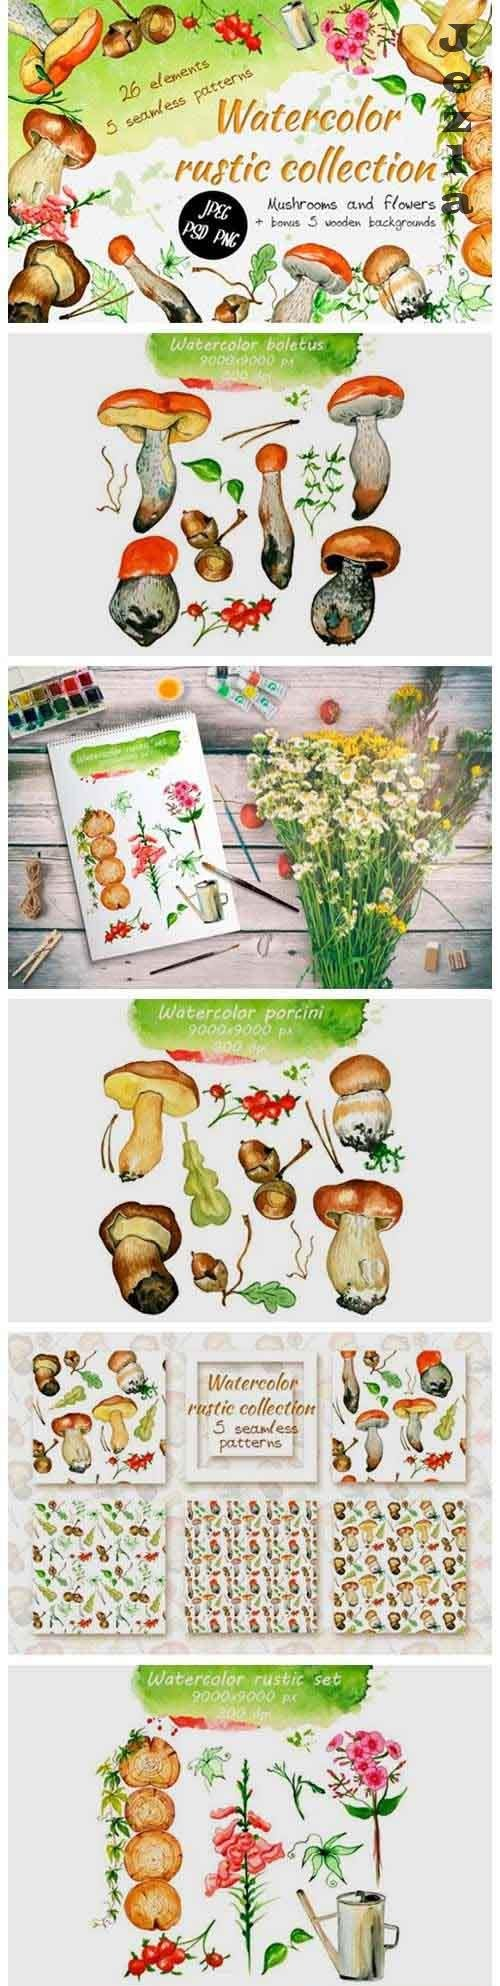 Watercolor rustic set with Mushrooms - 818188